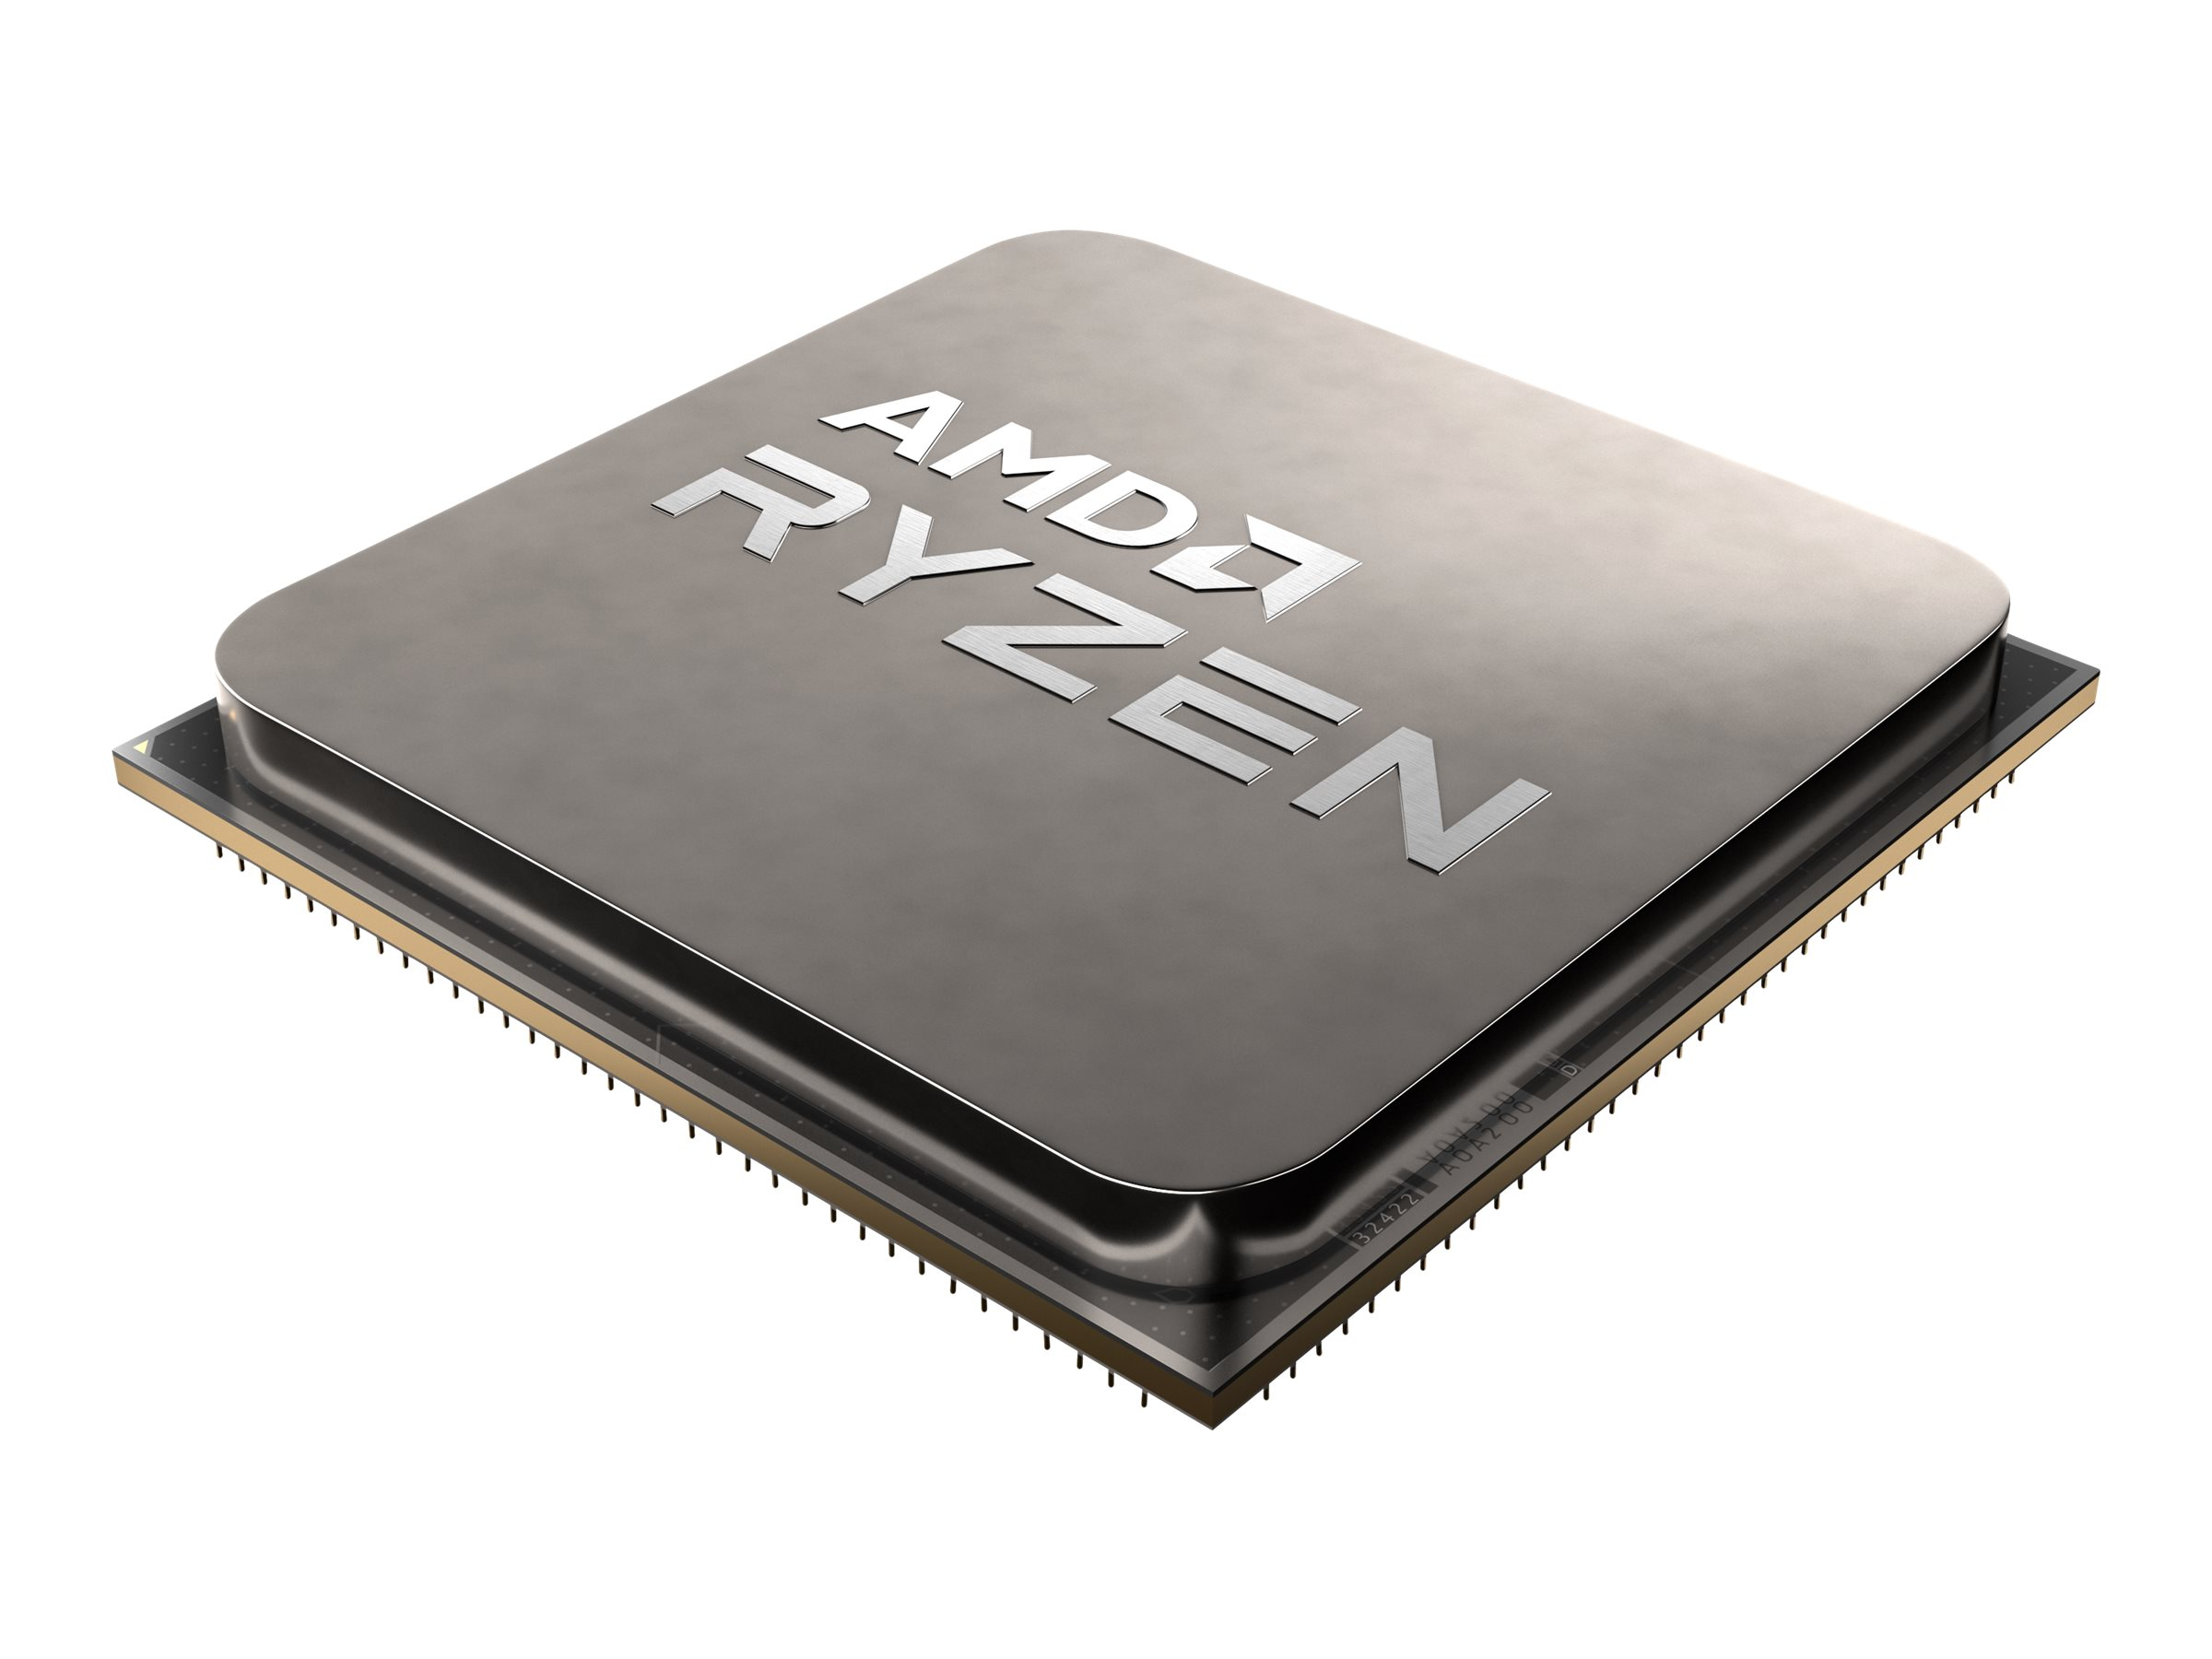 AMD Ryzen 9 5900X / 3.7 GHz processor